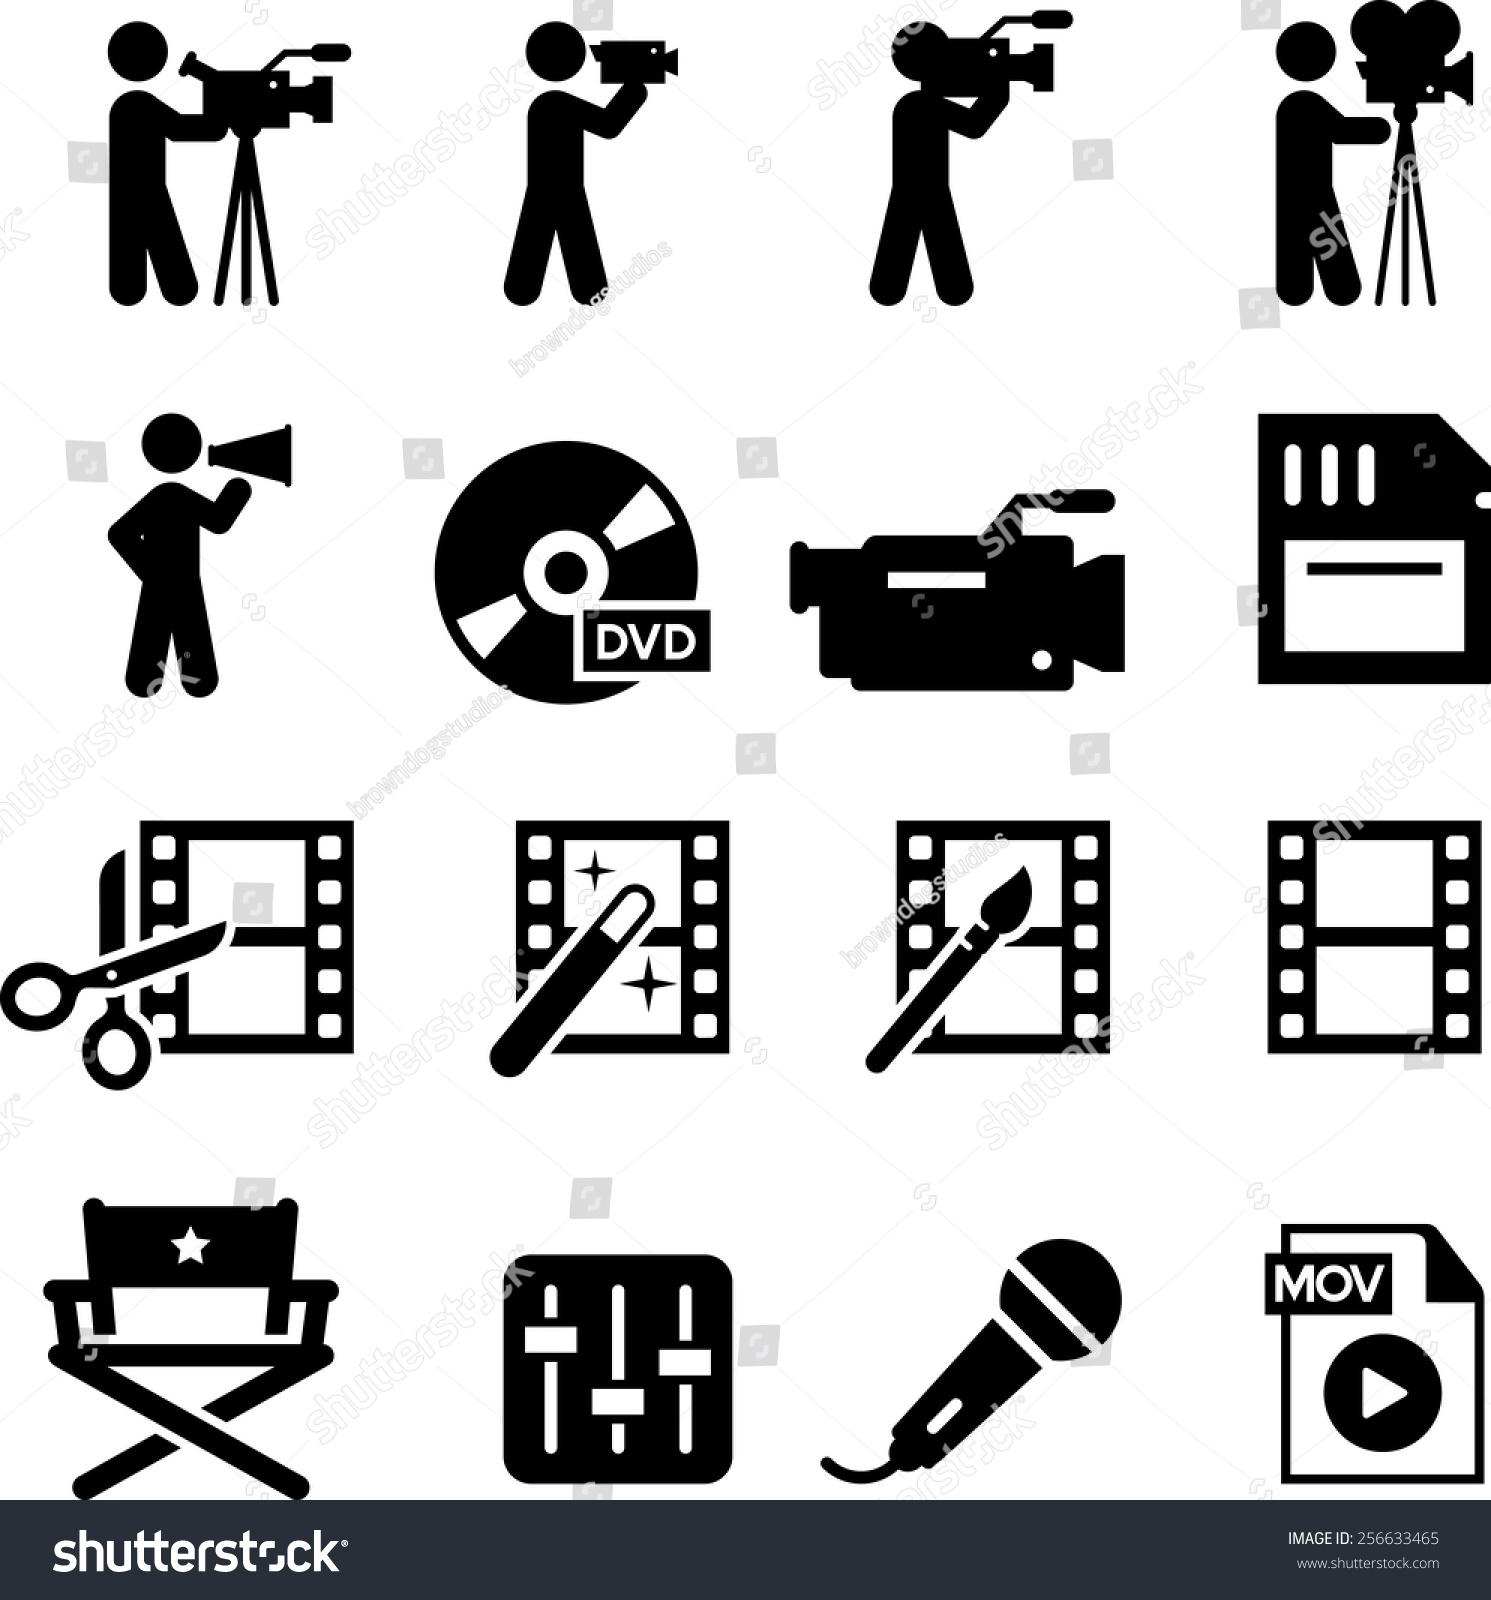 Film Production Vector Images